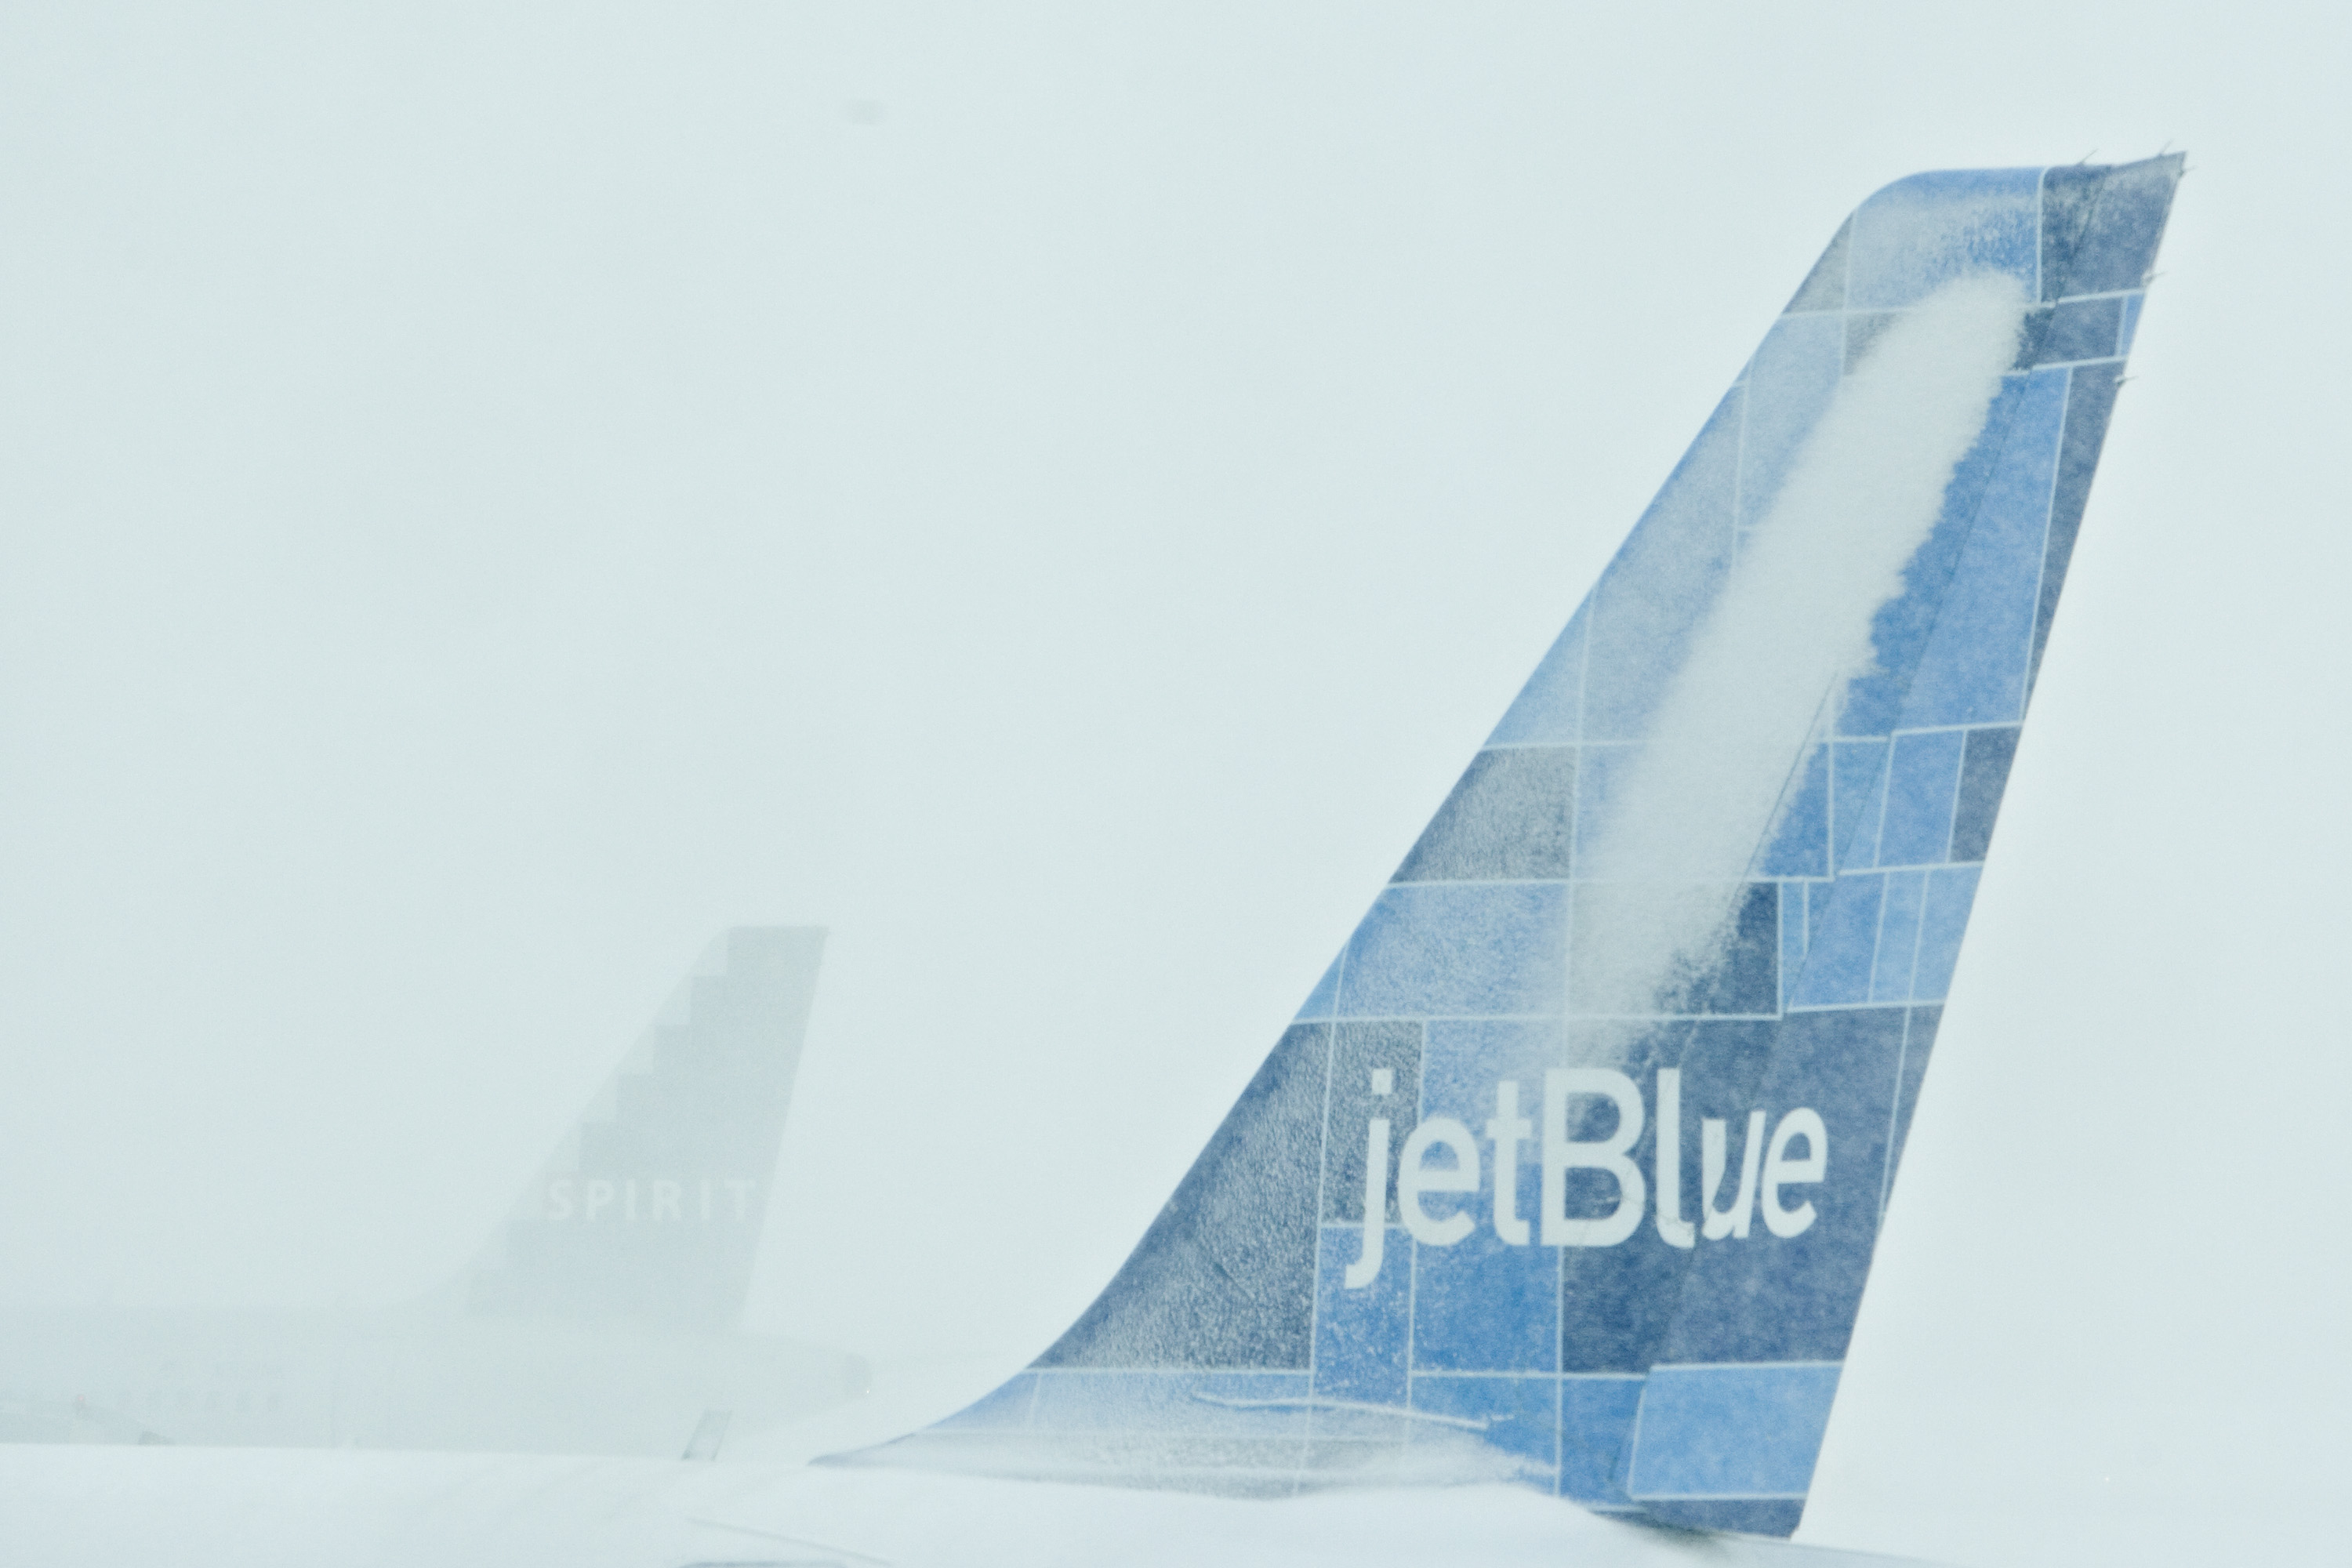 Snow covers the tail of a JetBlue Airbus at LaGuardia Airport in Queens, New York, on Feb. 10, 2010.